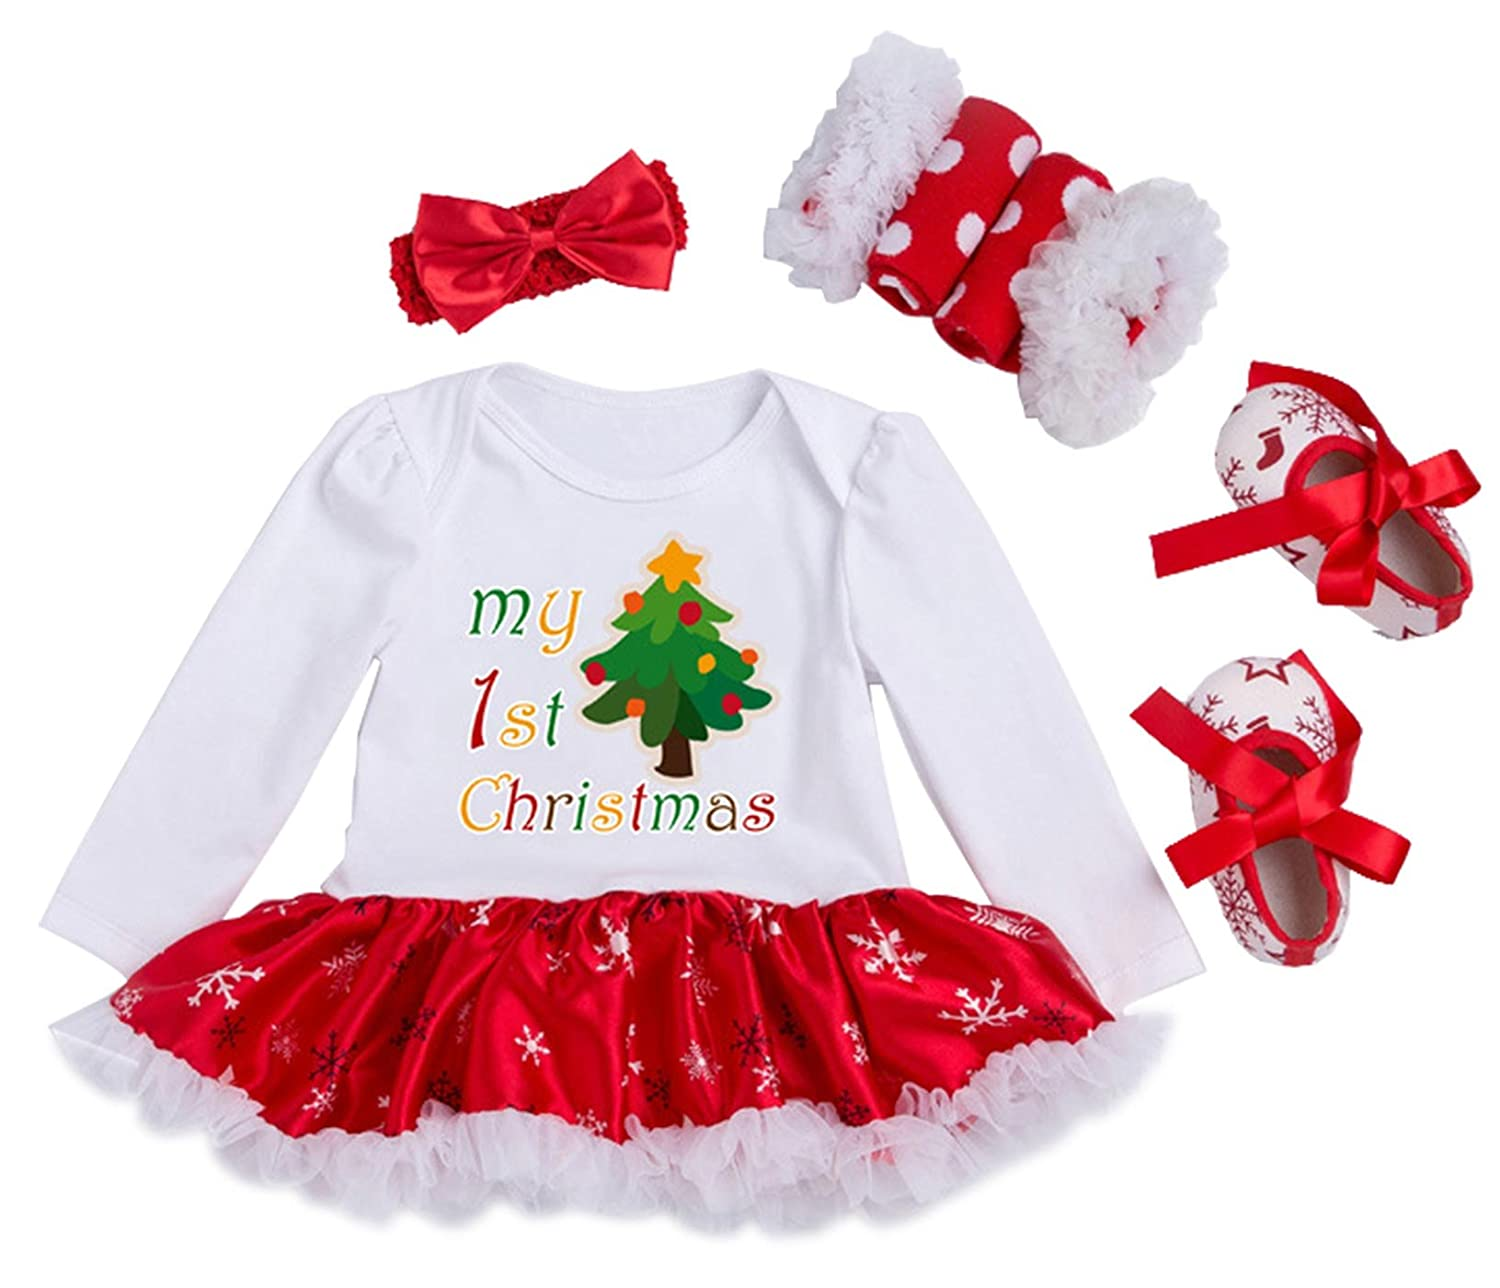 Newborn Baby Girls My First Christmas Costume Party Dress Tutu Outfits Jumpsuit Christmas Socks Pattern for 0-3 Months YK&Loving